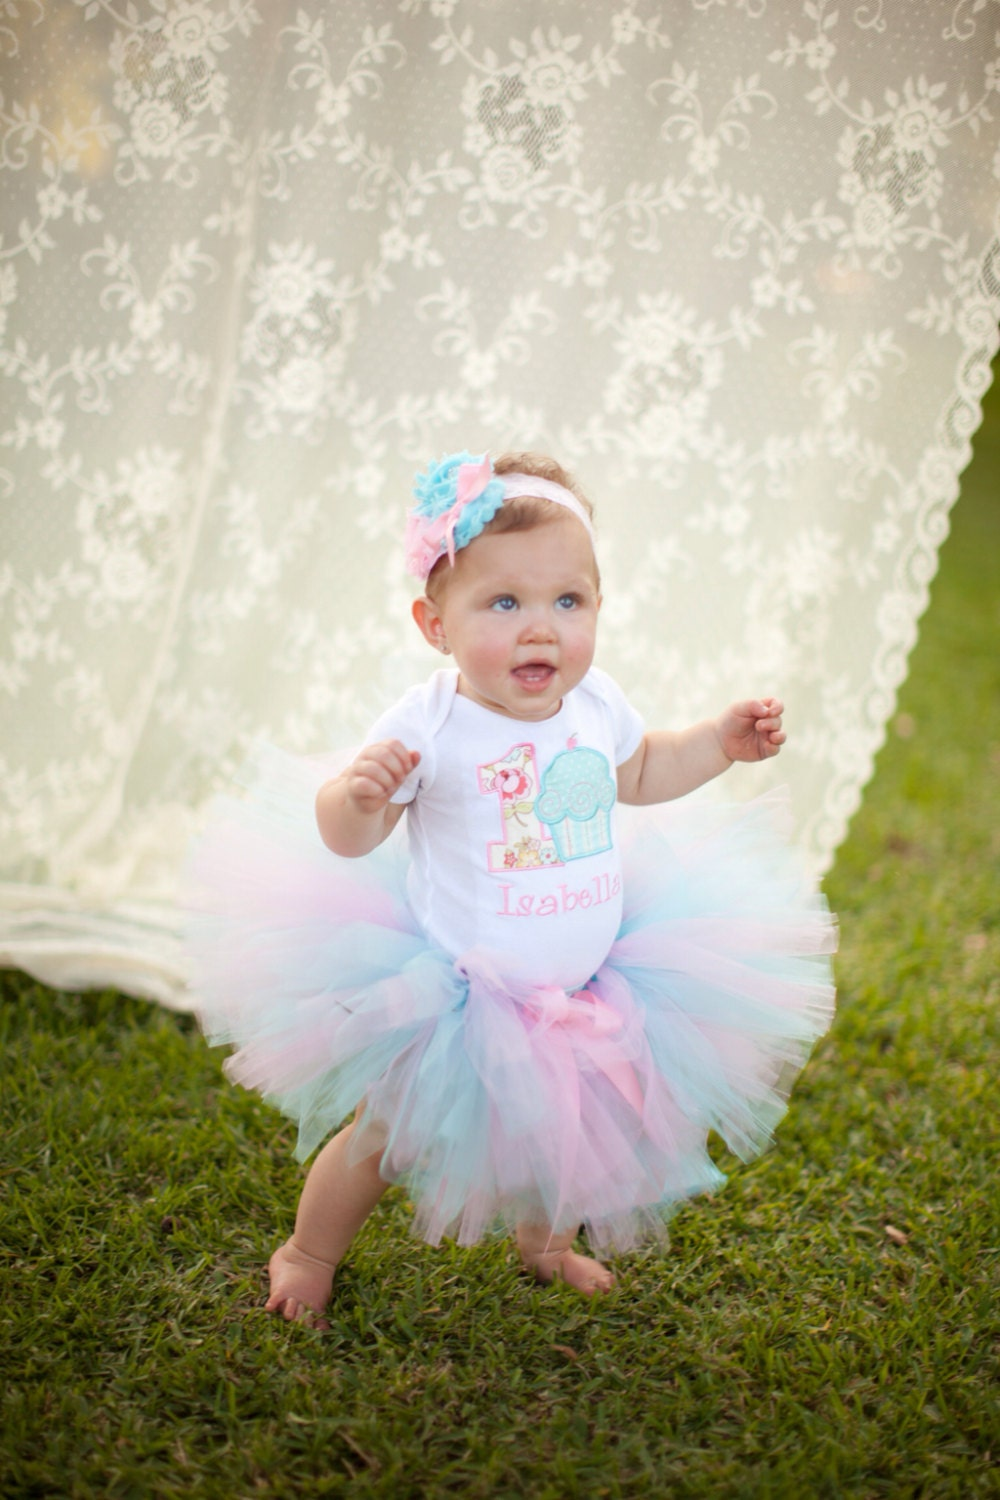 You'll find a huge section of delightful first birthday outfits and clothing at Sugie Baby. Choose from cute 1st birthday outfits, shirts, dresses, bibs and hats to make that very special first birthday picture .